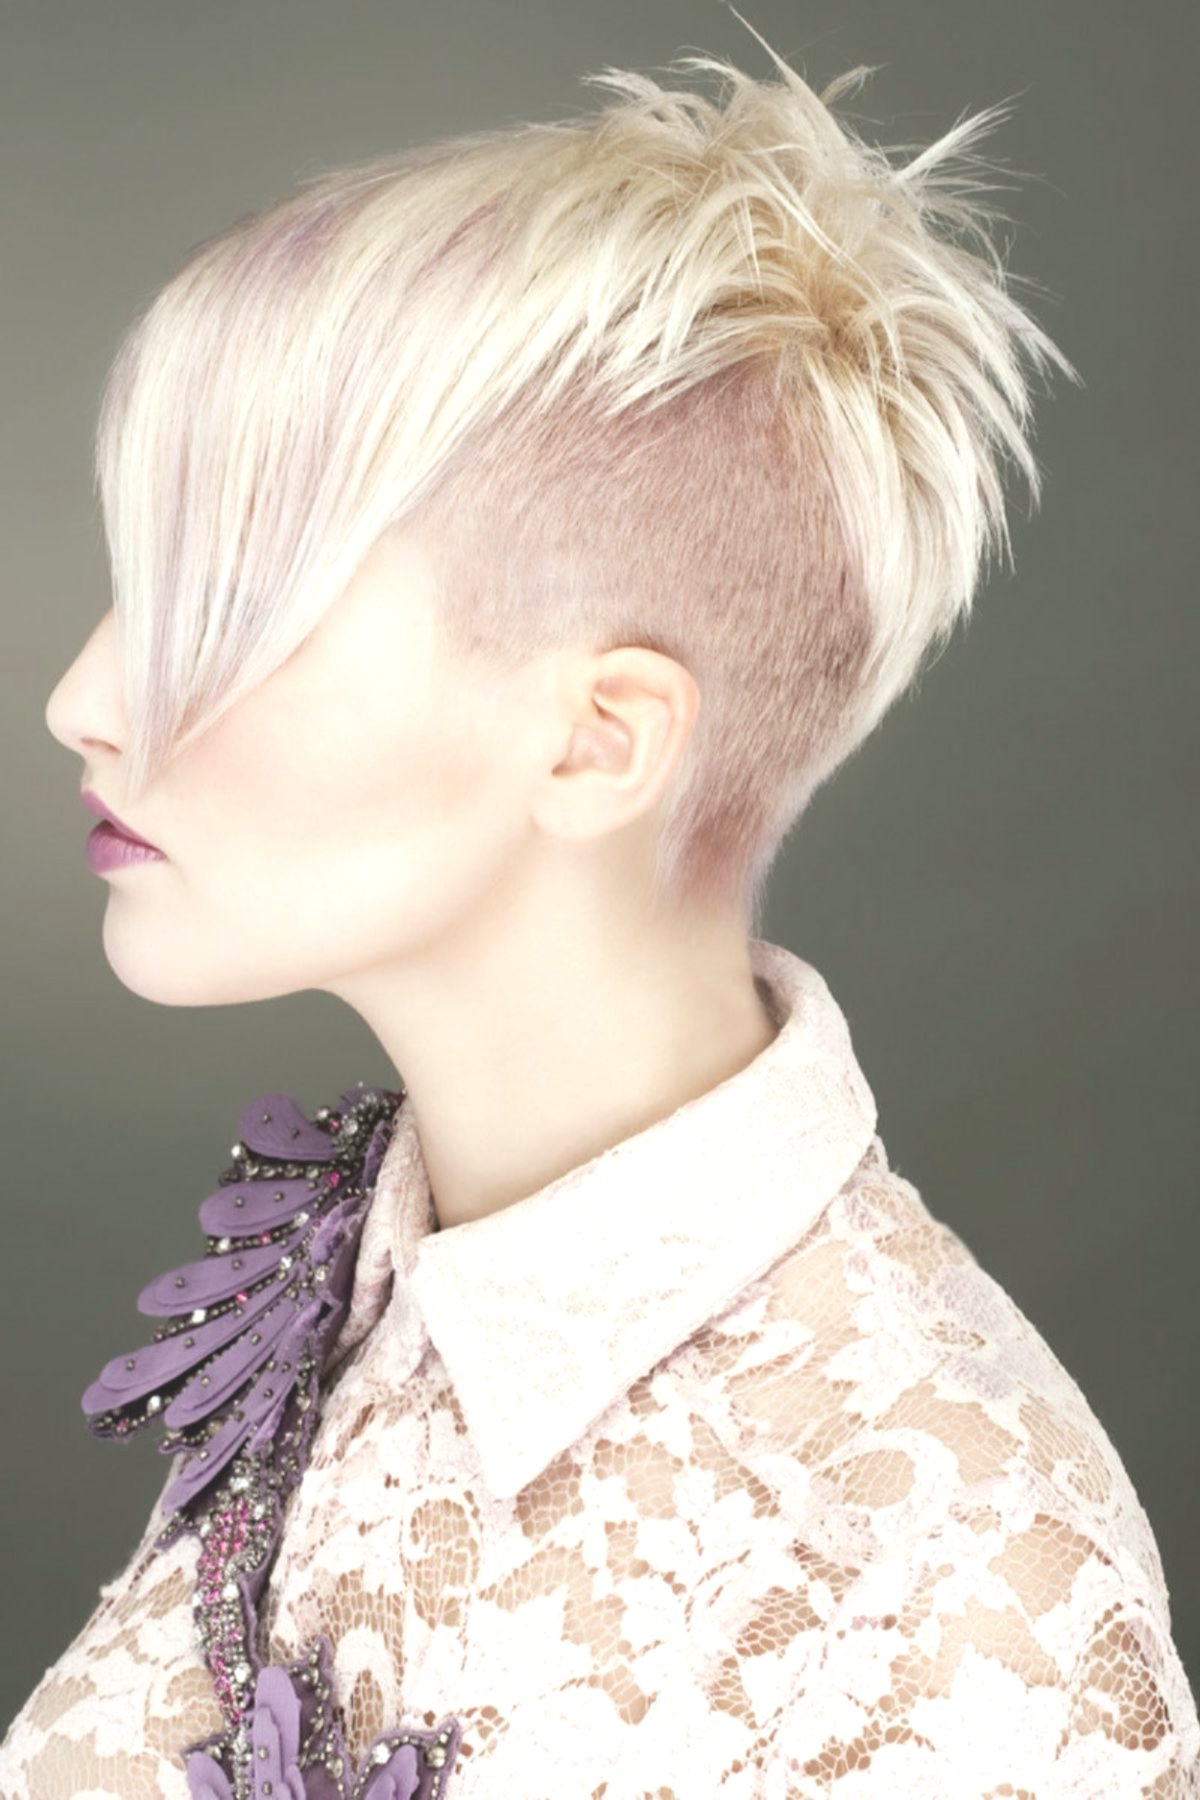 elegant hairstyles Over 50 collection-Inspirational Hairstyles Over 50 Gallery